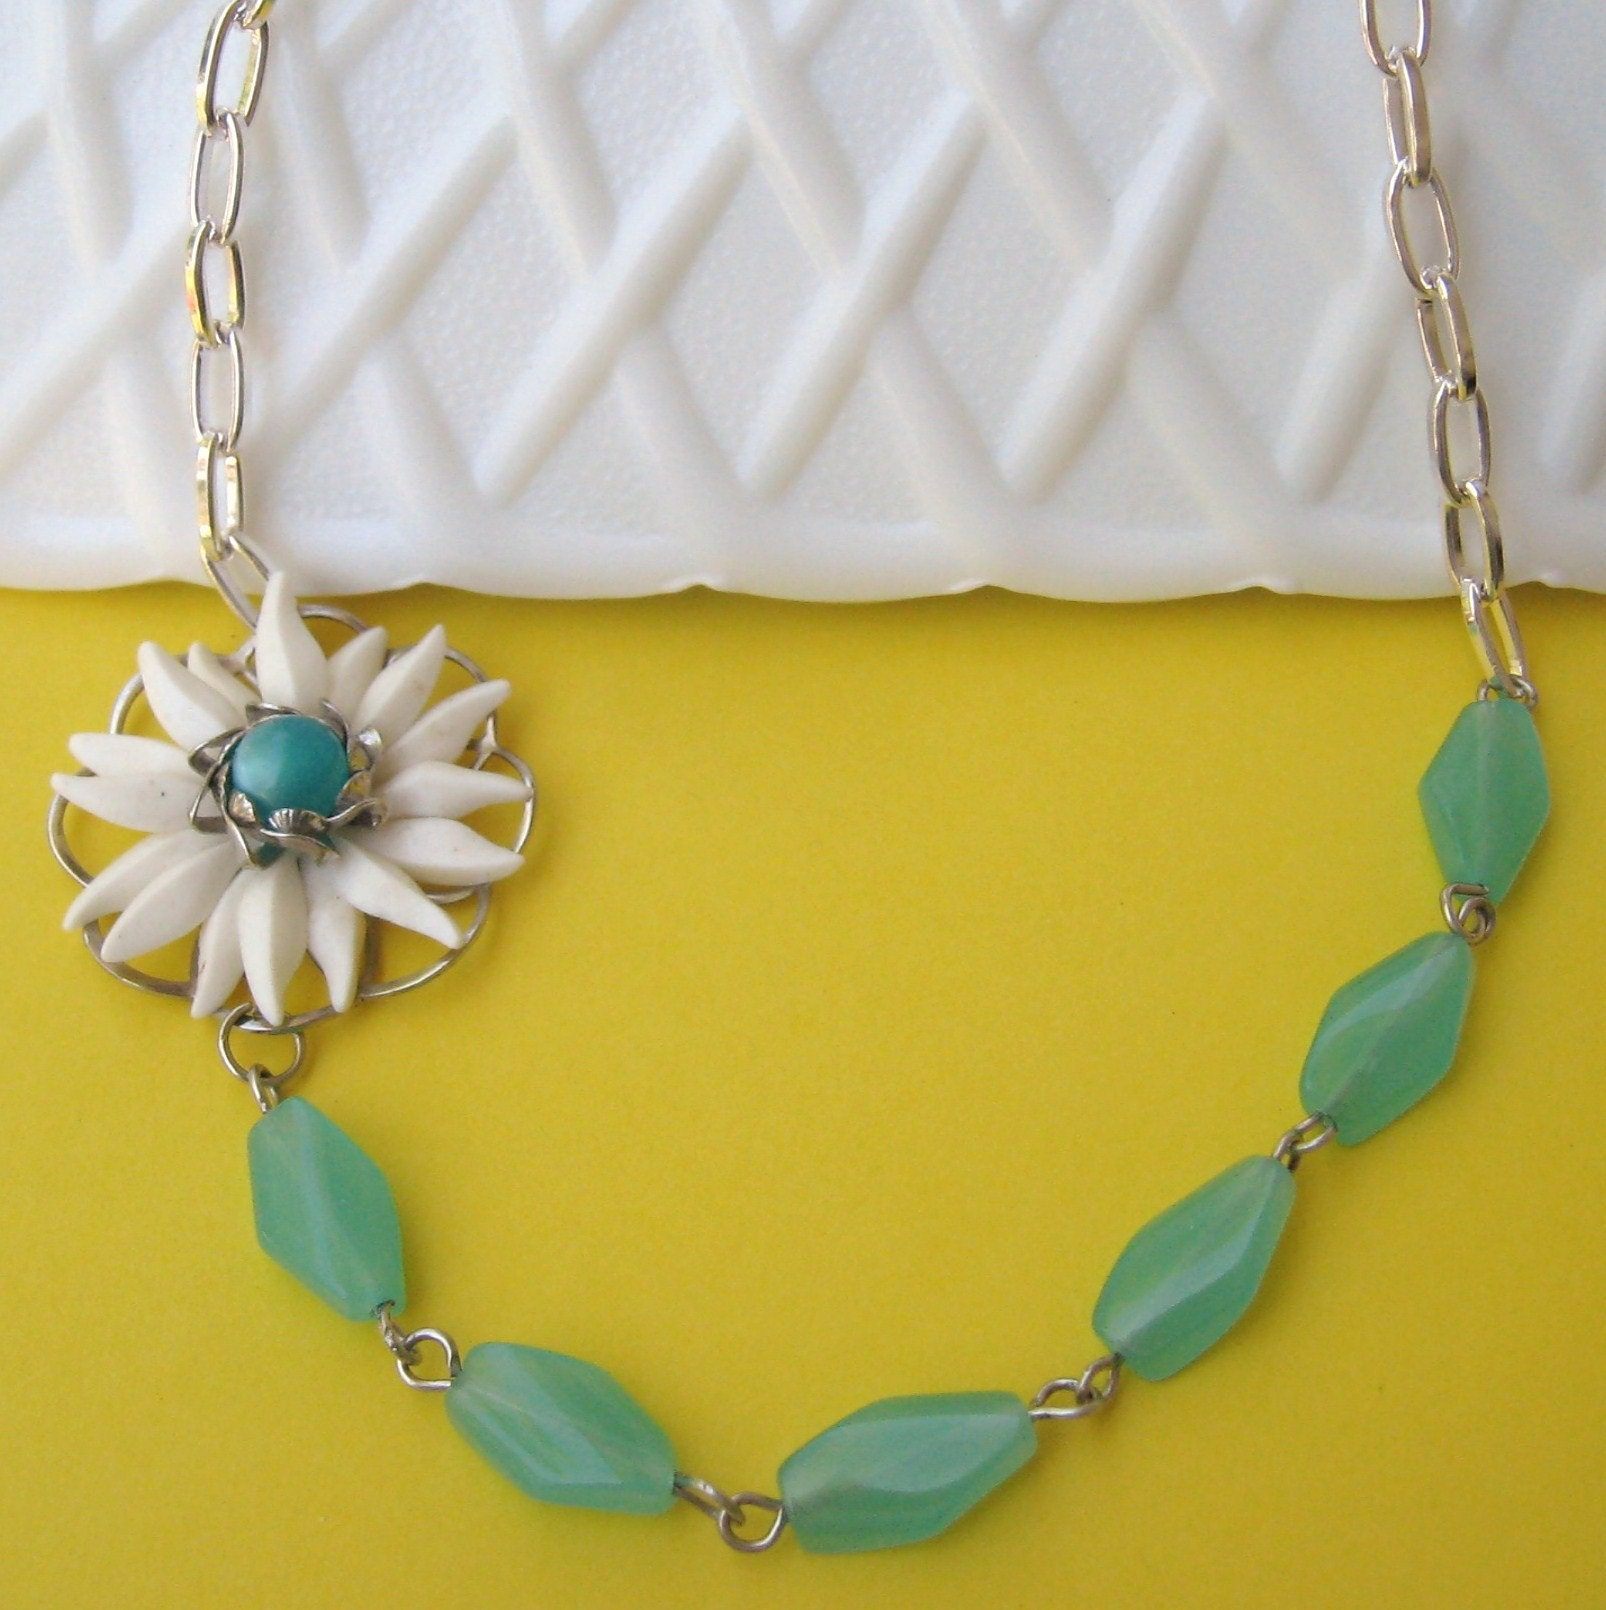 AFTER THE RAIN revamped necklace